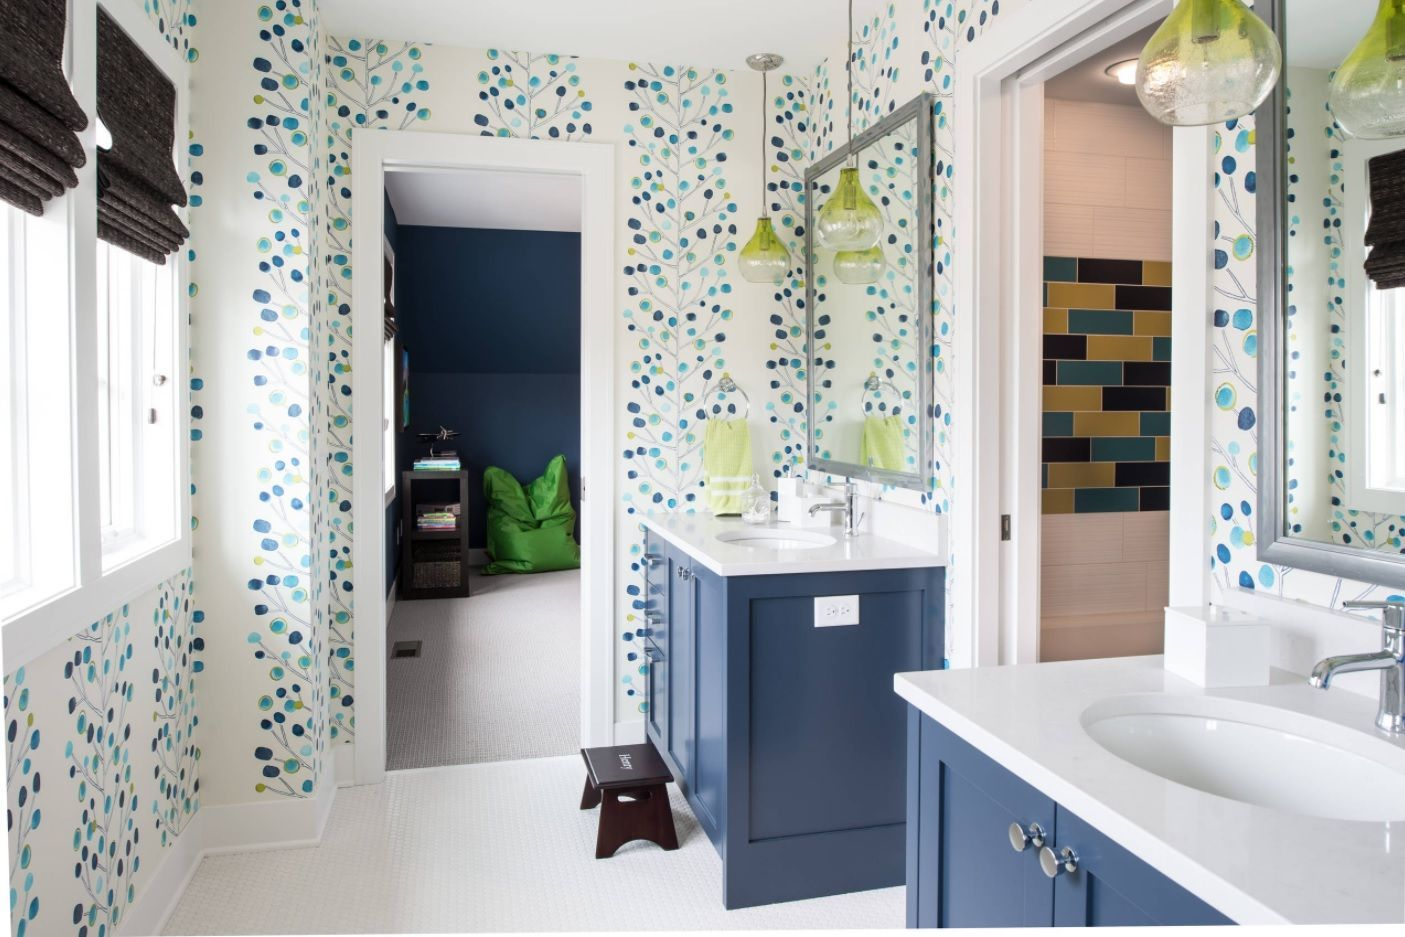 Jack and Jill Bathroom Interior Design Ideas. Spotty green & white design of the Classic colorful decorated bath with deep blue vanity stands